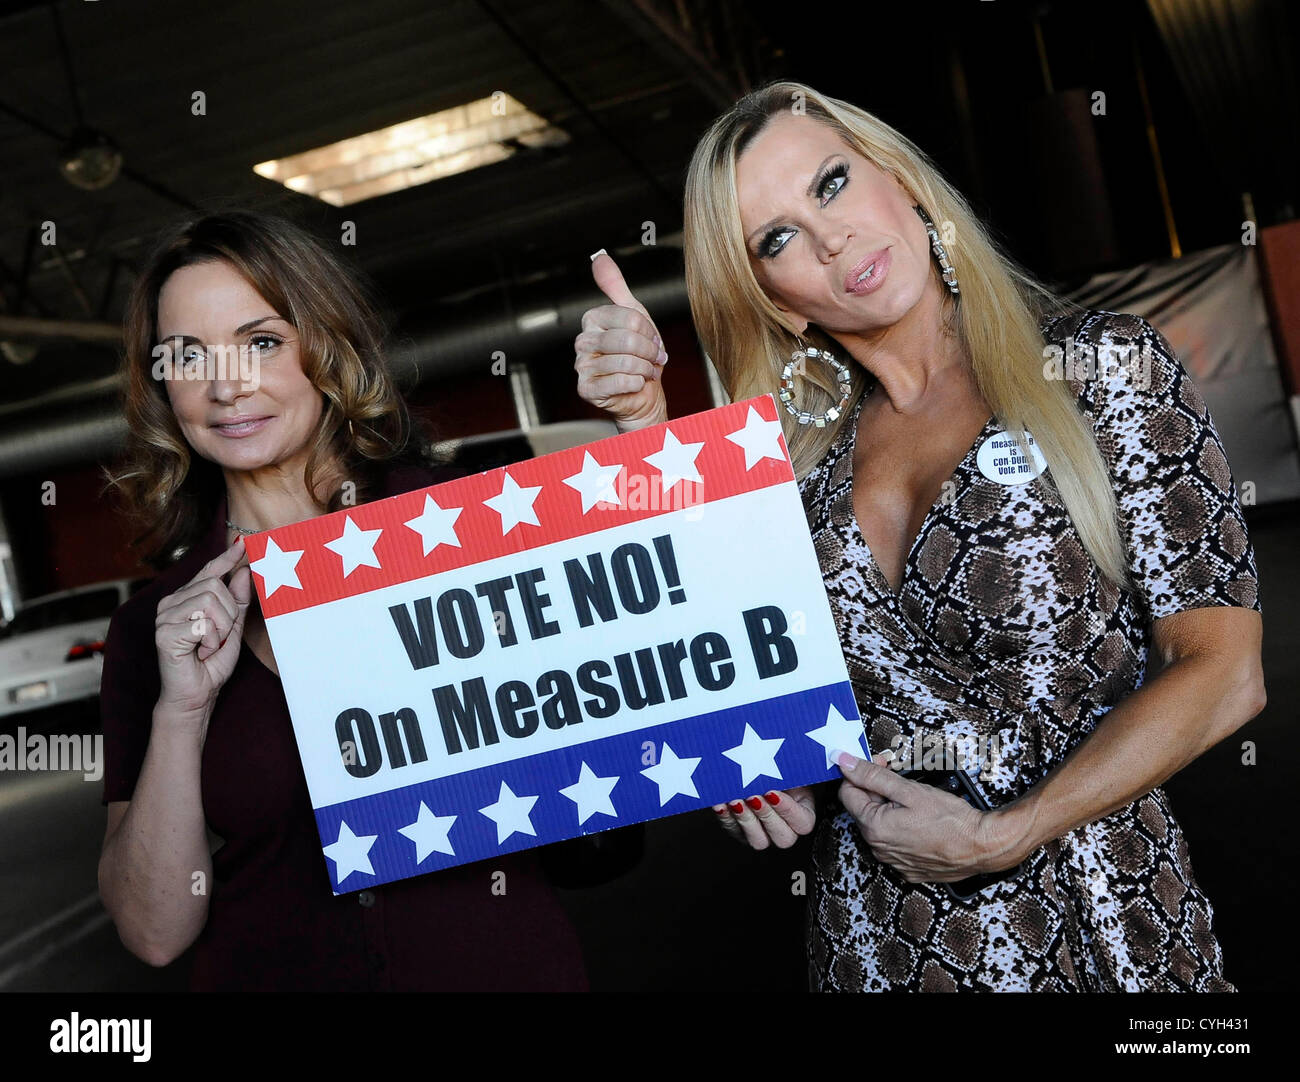 Award Winning Adult Actresses Rebecca Bardouxl And Amber Lynn Talk About Measure B At A Rally At Dejavu Strip Club In North Hollywood To Remind The